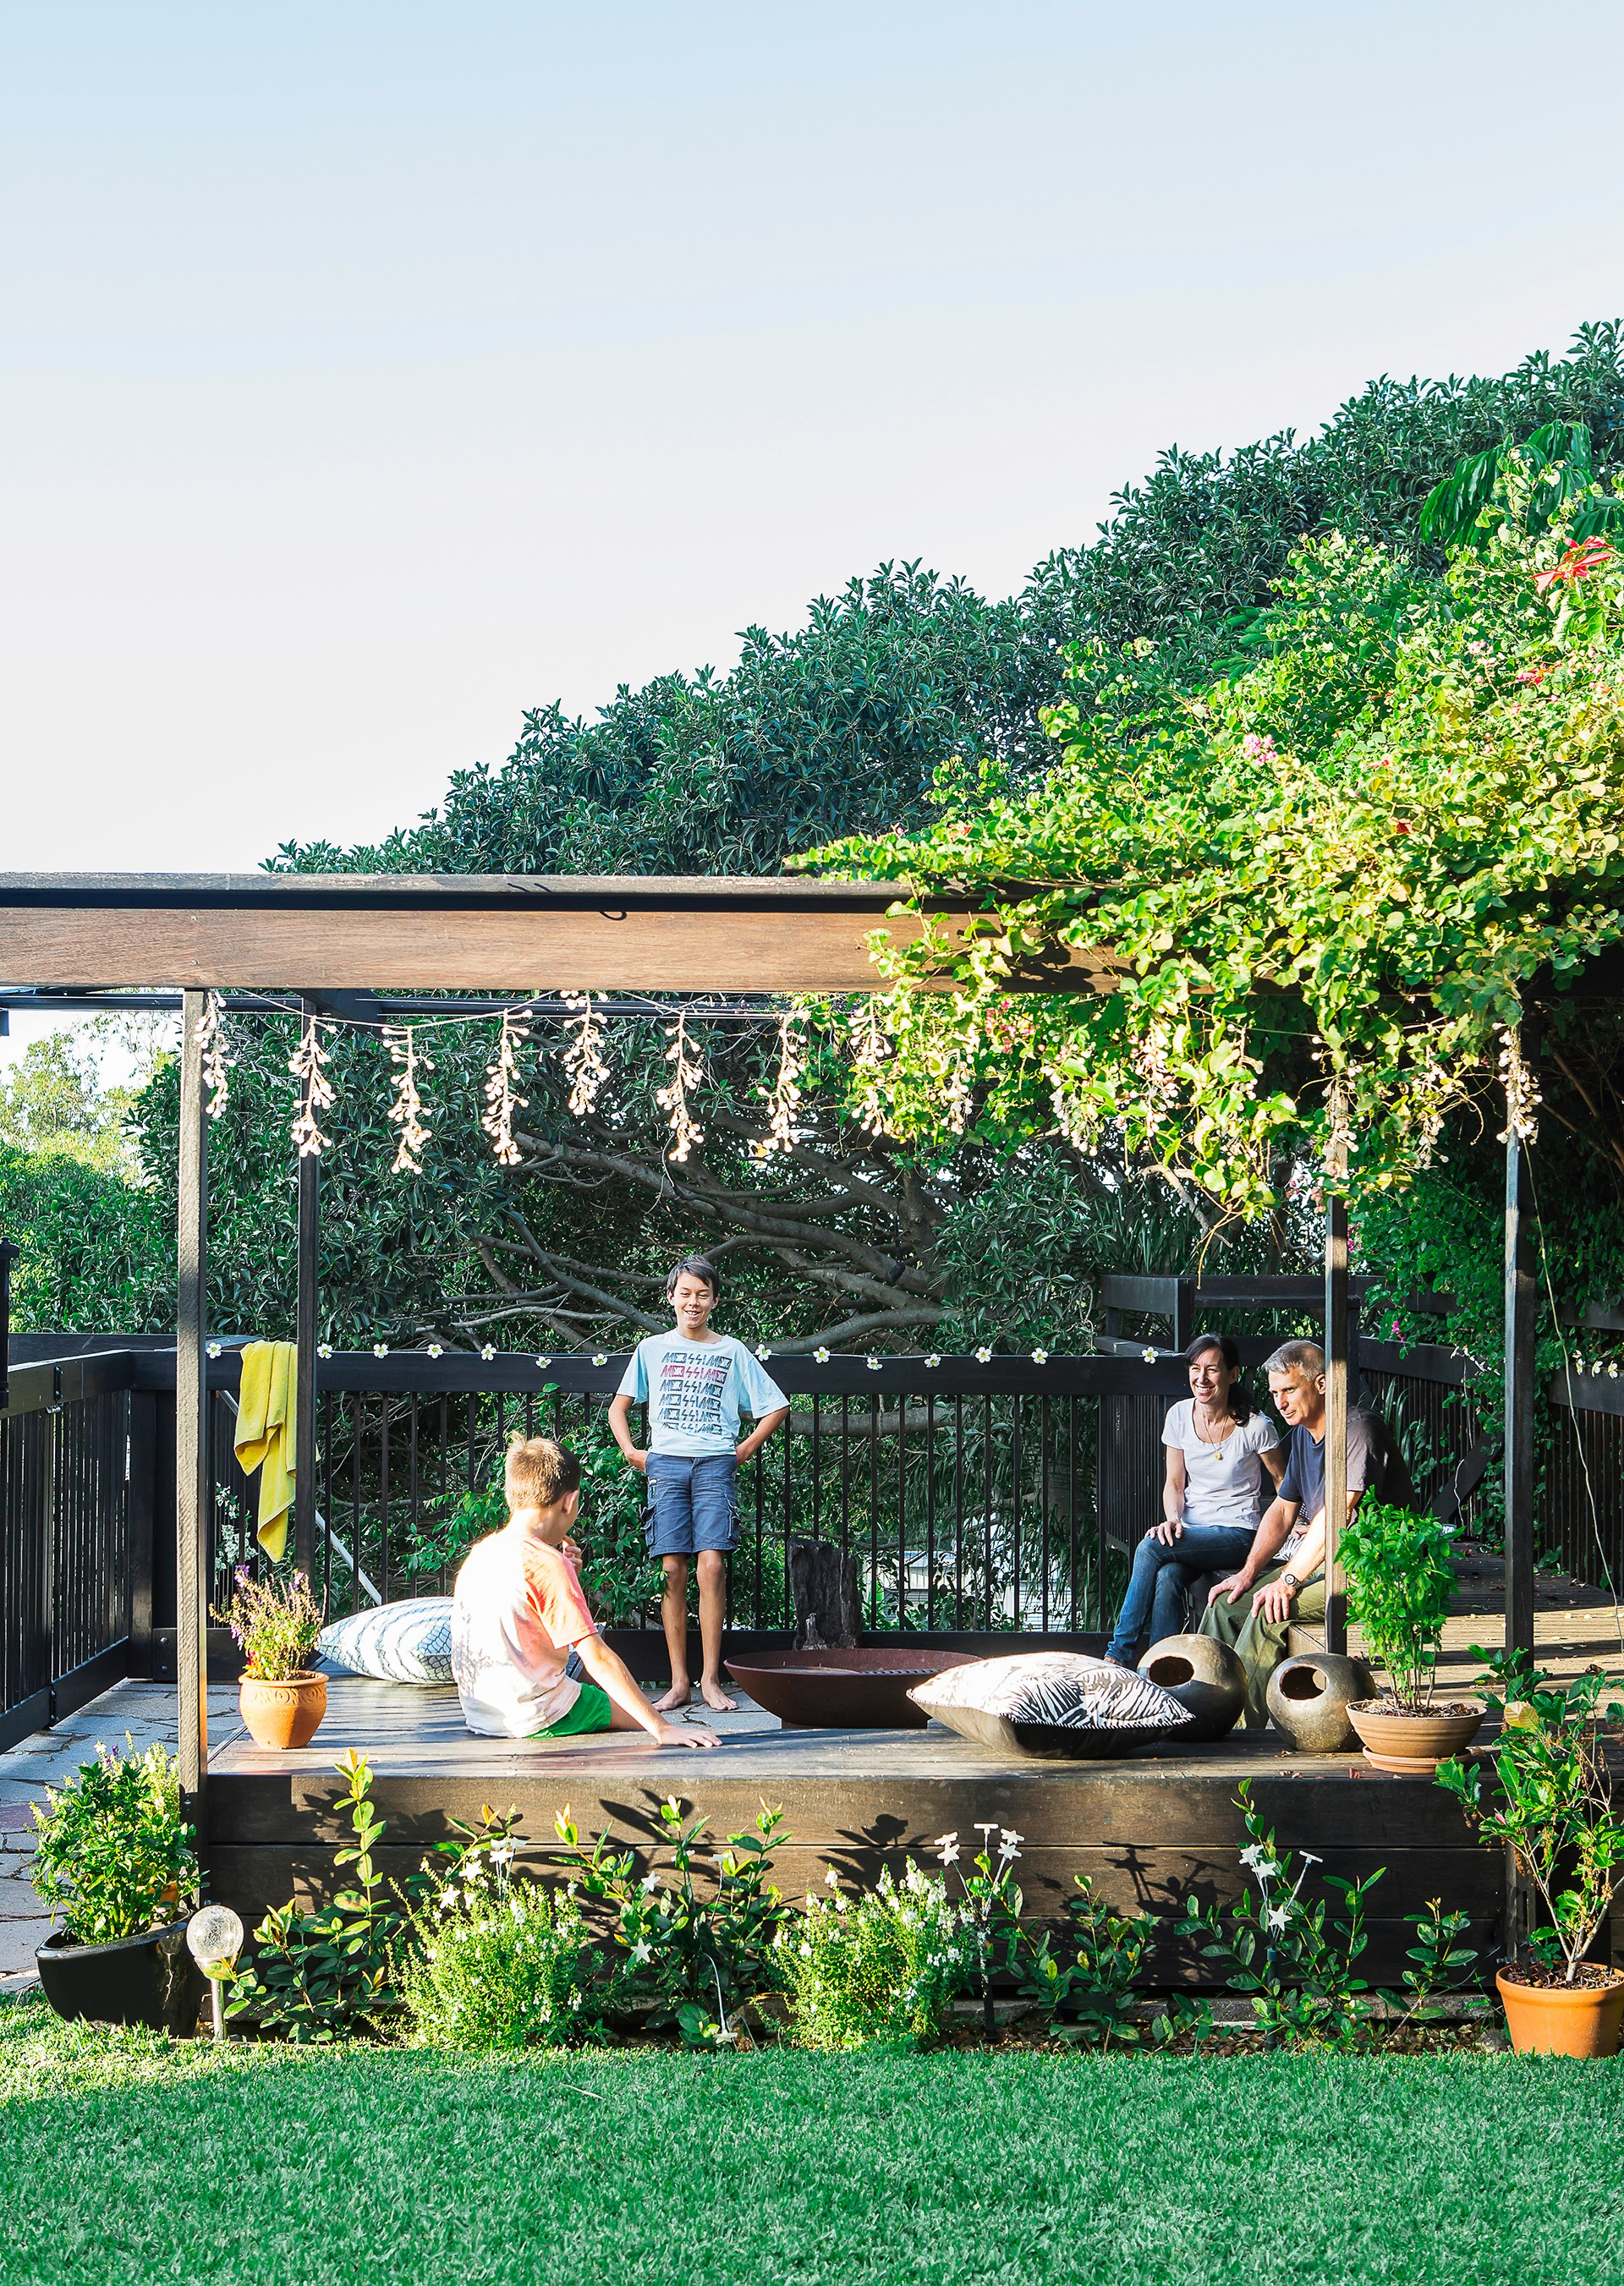 In this [Queenslander renovation](http://www.homestolove.com.au/gallery-queenslander-reno-brings-outdoors-in-2555), a new pergola with built-in bench seats and a fire pit can be used as an outdoor entertaining area year-round. The neighbour's bougainvillea provides shade, a stop-gap until the wisteria grows.